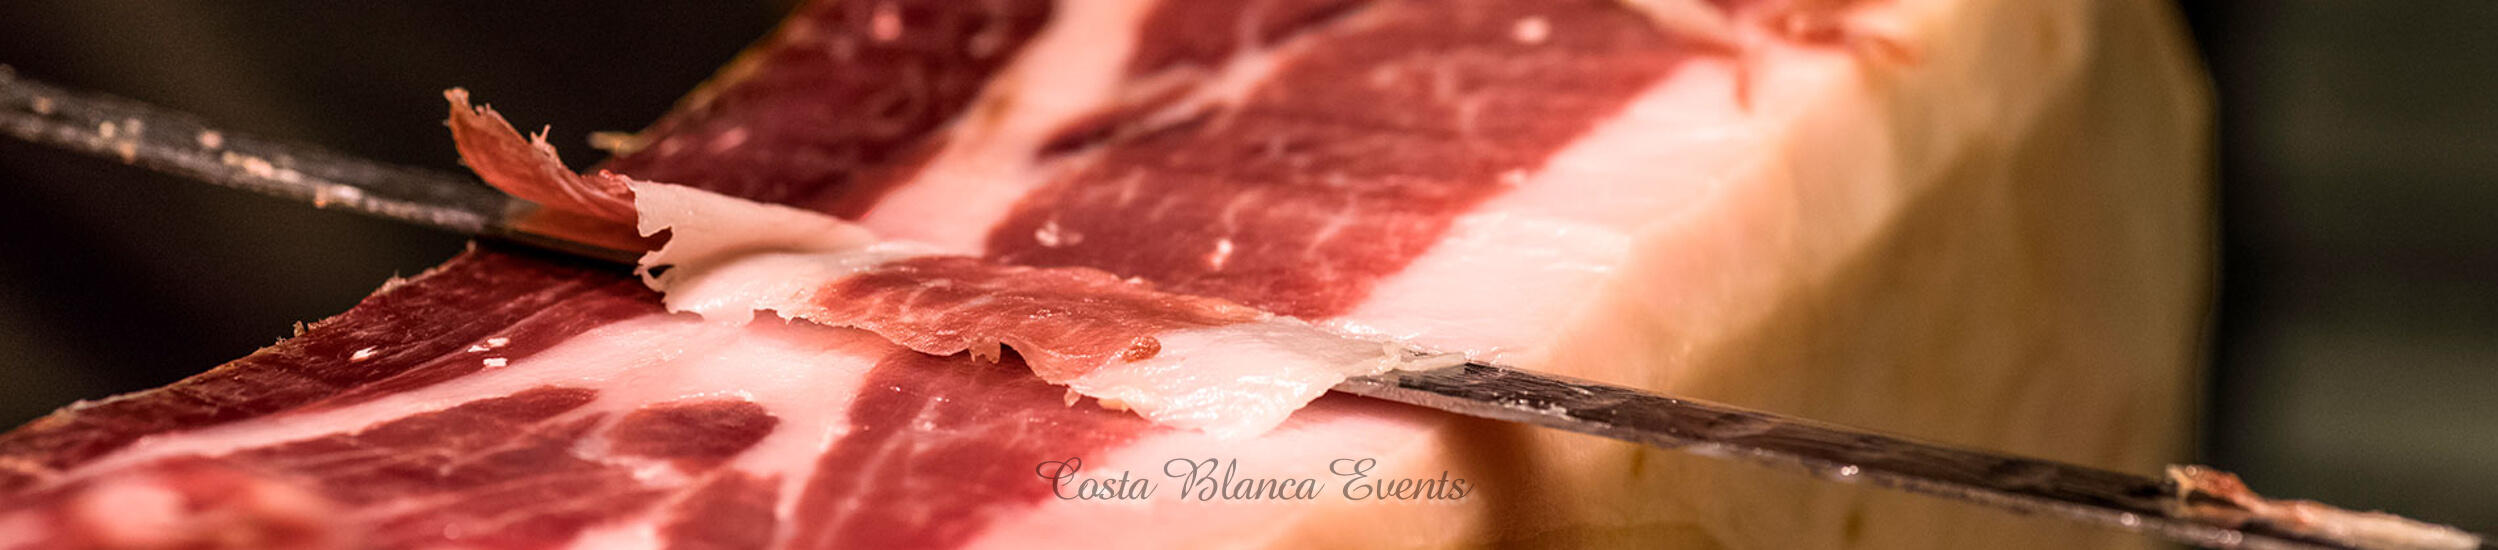 Spanish ham being cut s just unforgettable during a wedding in Spain